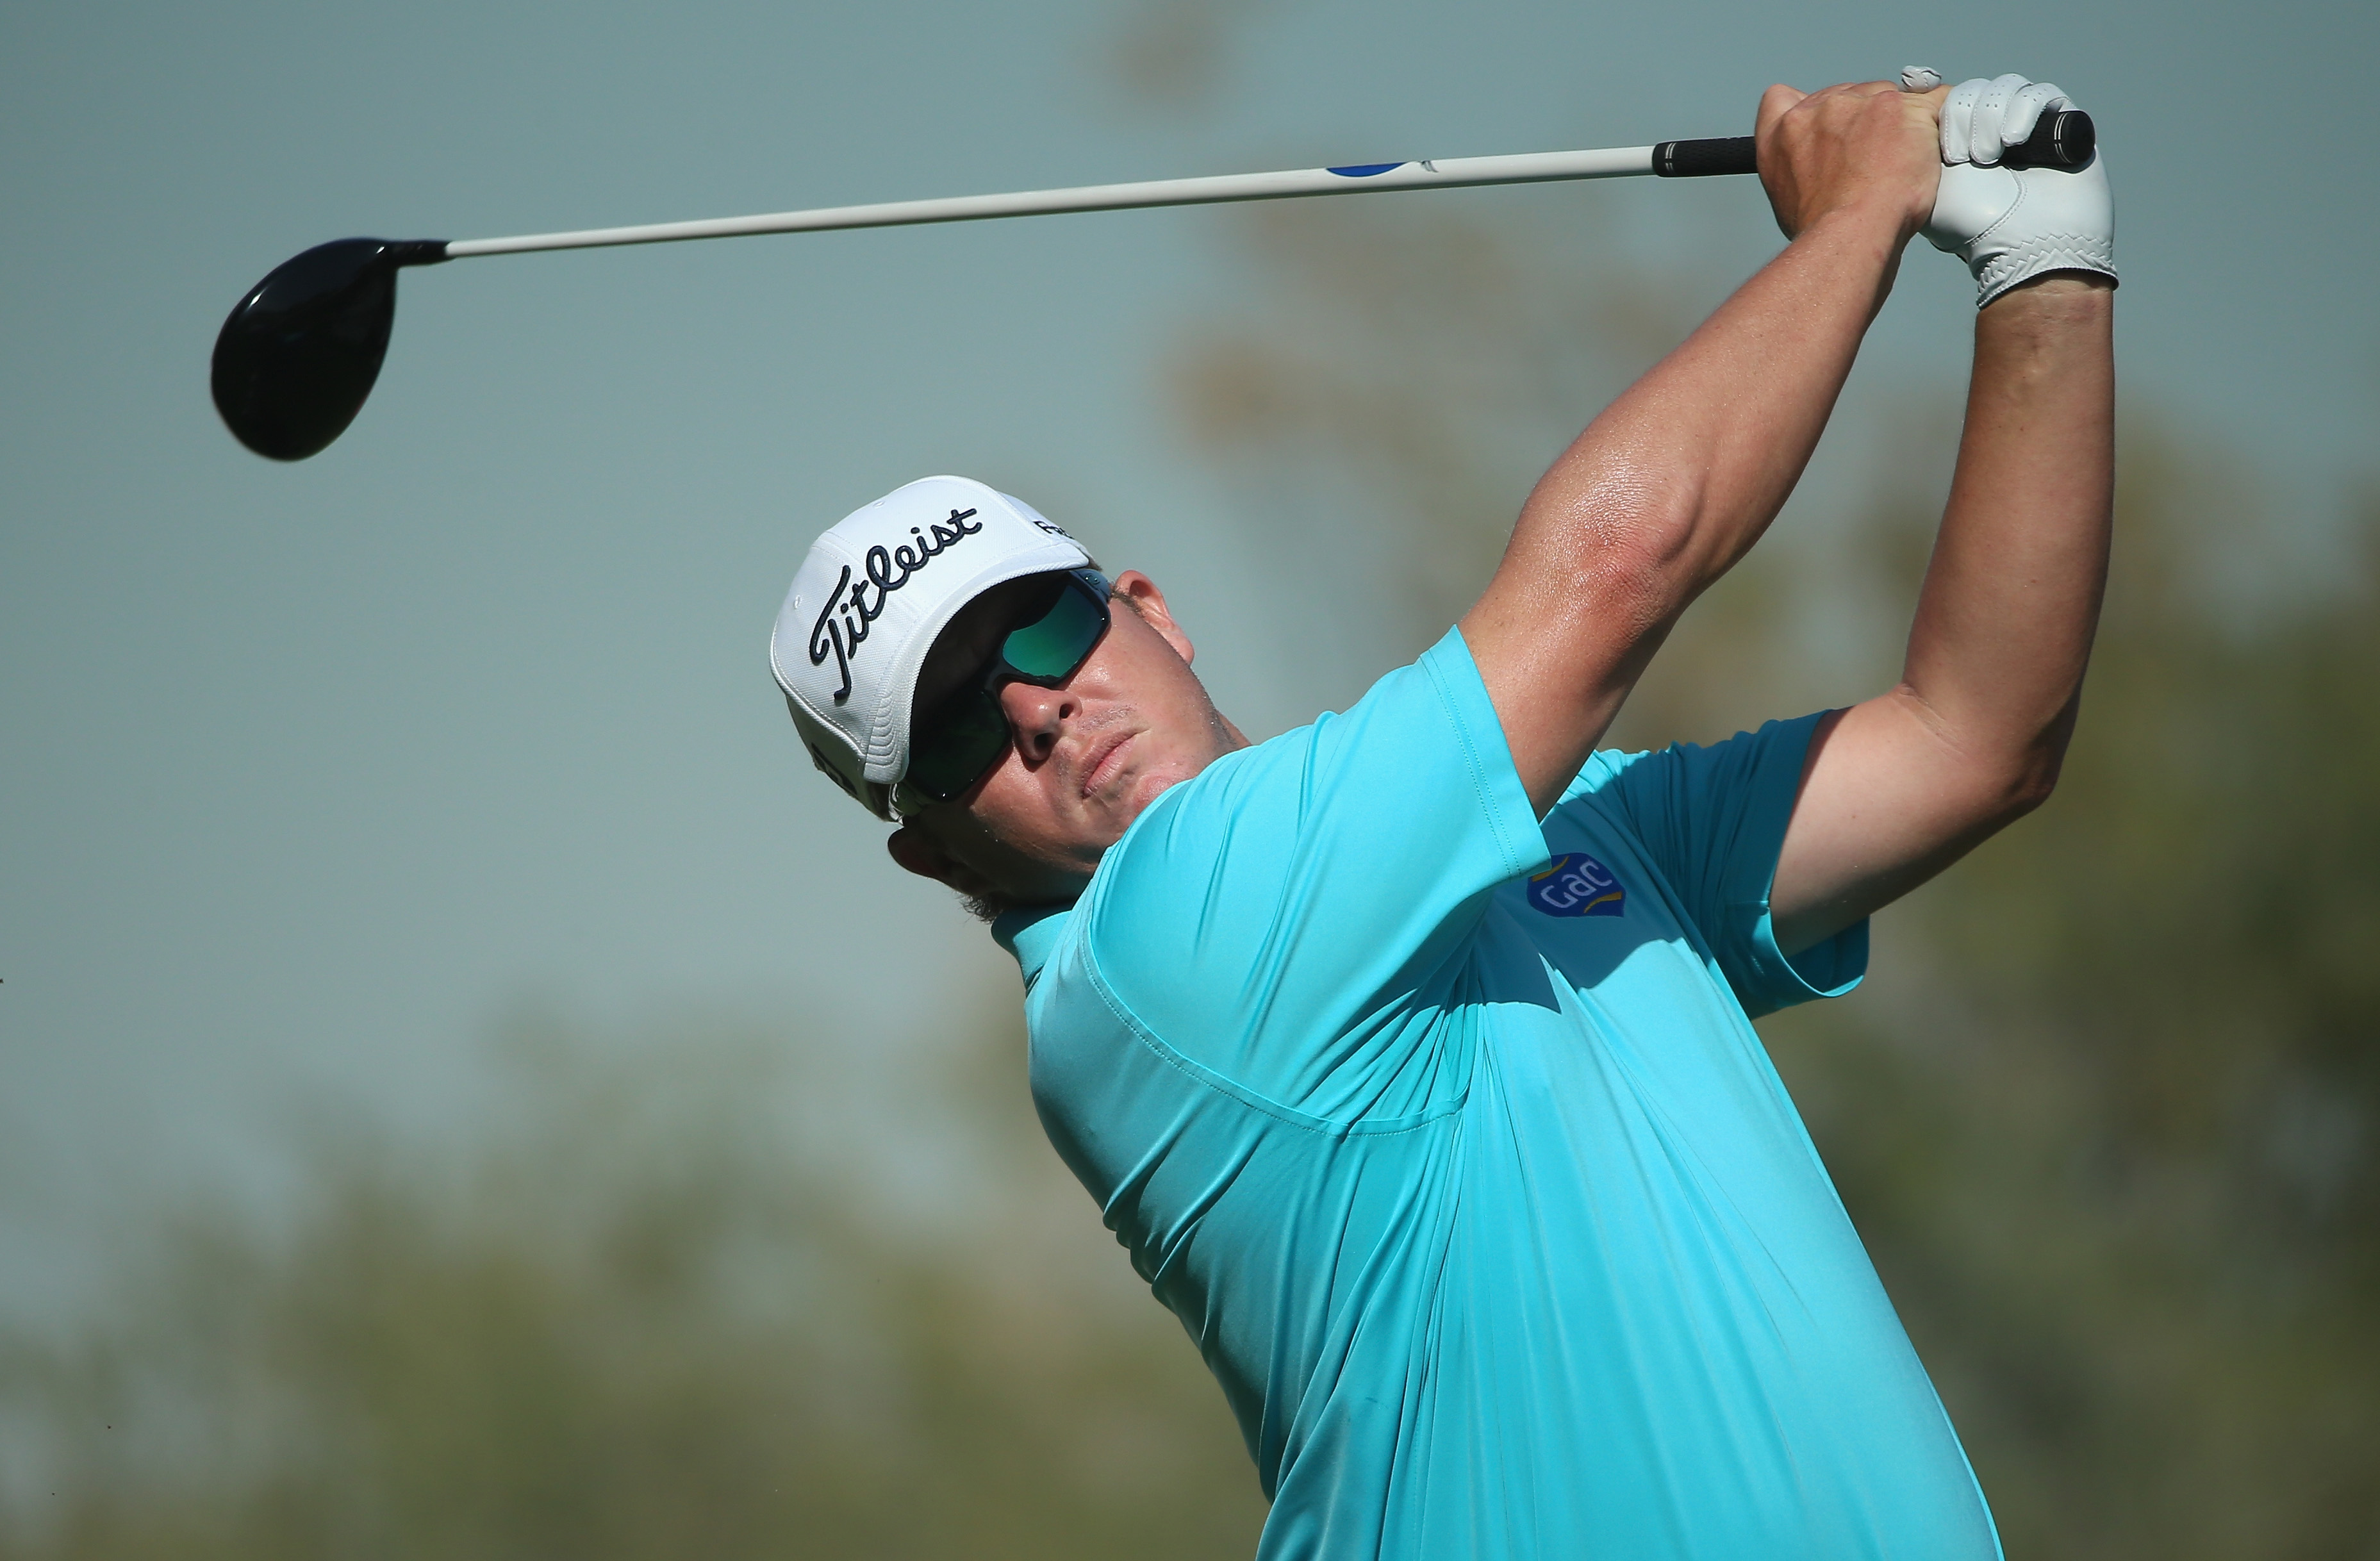 George Coetzee of South Africa watches his tee shot during the final round of the Commercial Bank Qatar Masters at Doha Golf Club on Jan. 24, 2015, in Doha, Qatar. He'll defend his Joburg Open title this week.